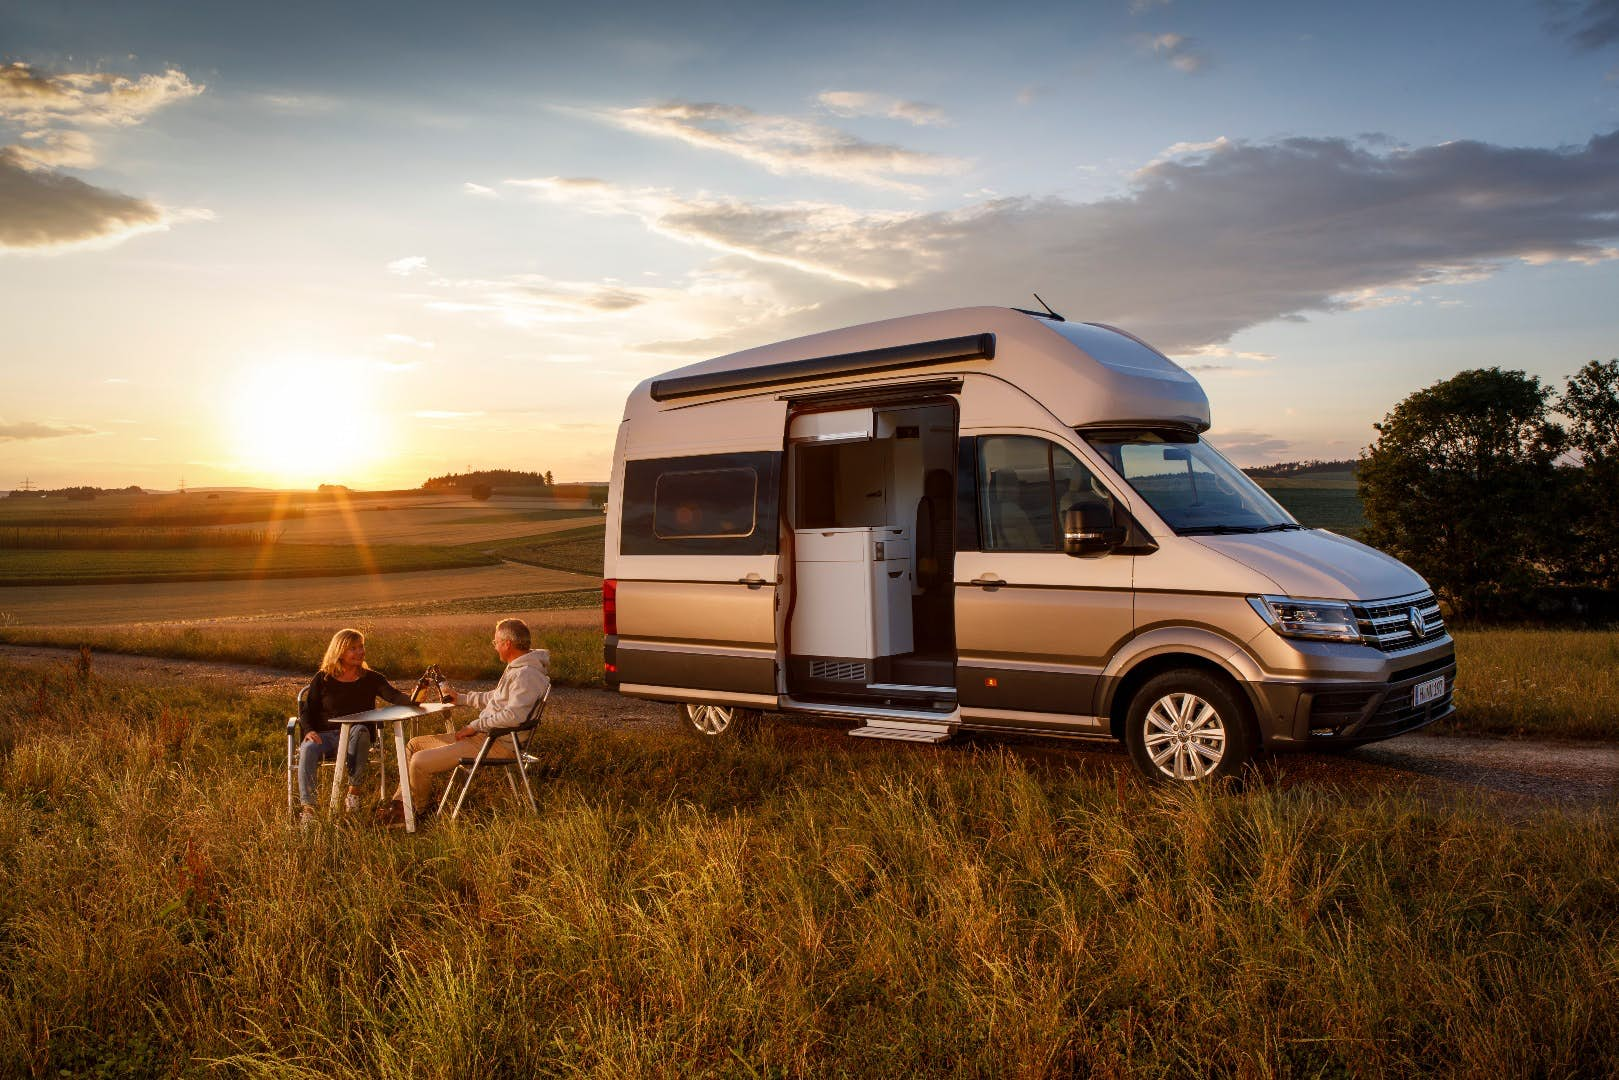 Volkswagen adds a larger, amenity-packed camper van to its lineup